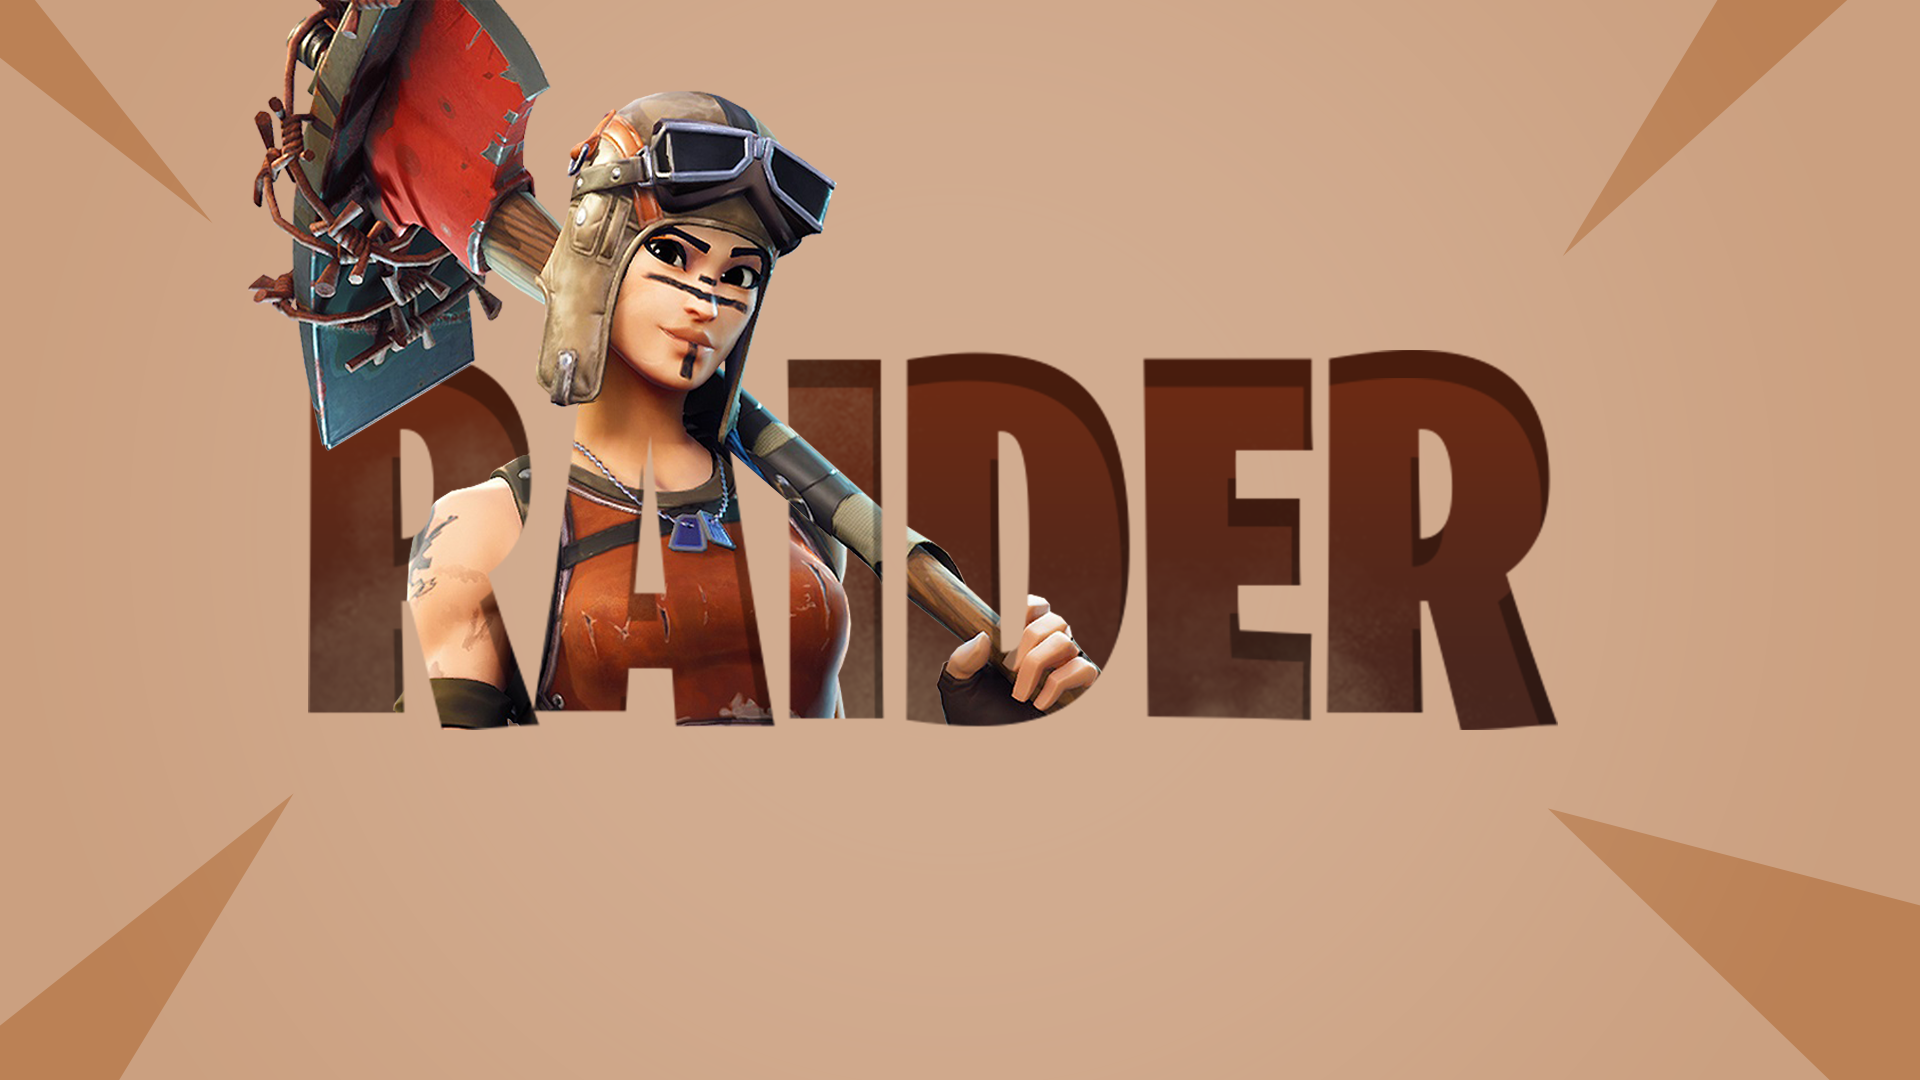 Raider Backgrounds Png Free Raider Backgrounds Png Transparent Images 61598 Pngio